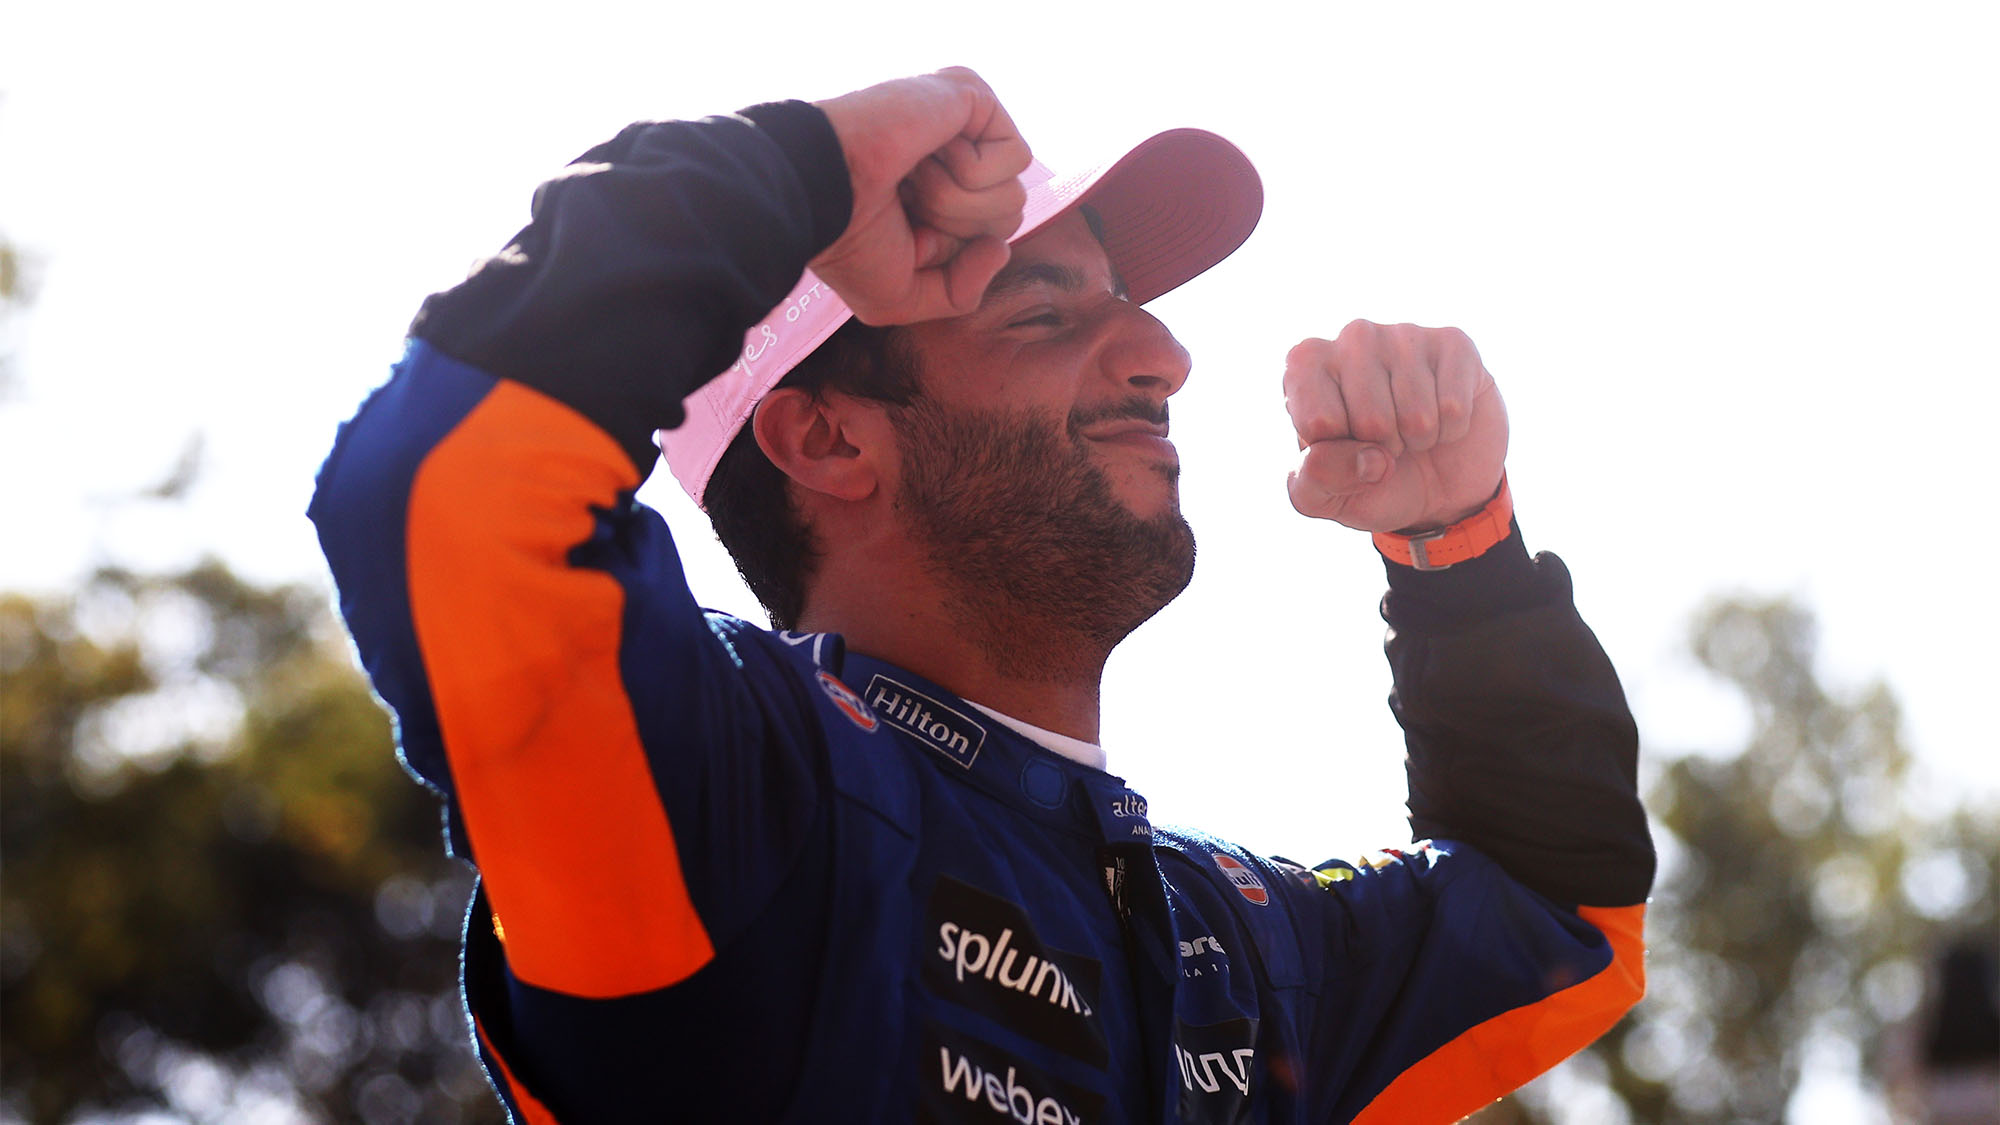 MONZA, ITALY - SEPTEMBER 12: Race winner Daniel Ricciardo of Australia driving the (3) McLaren F1 Team MCL35M Mercedes celebrates in parc ferme during the F1 Grand Prix of Italy at Autodromo di Monza on September 12, 2021 in Monza, Italy. (Photo by Lars Baron/Getty Images)